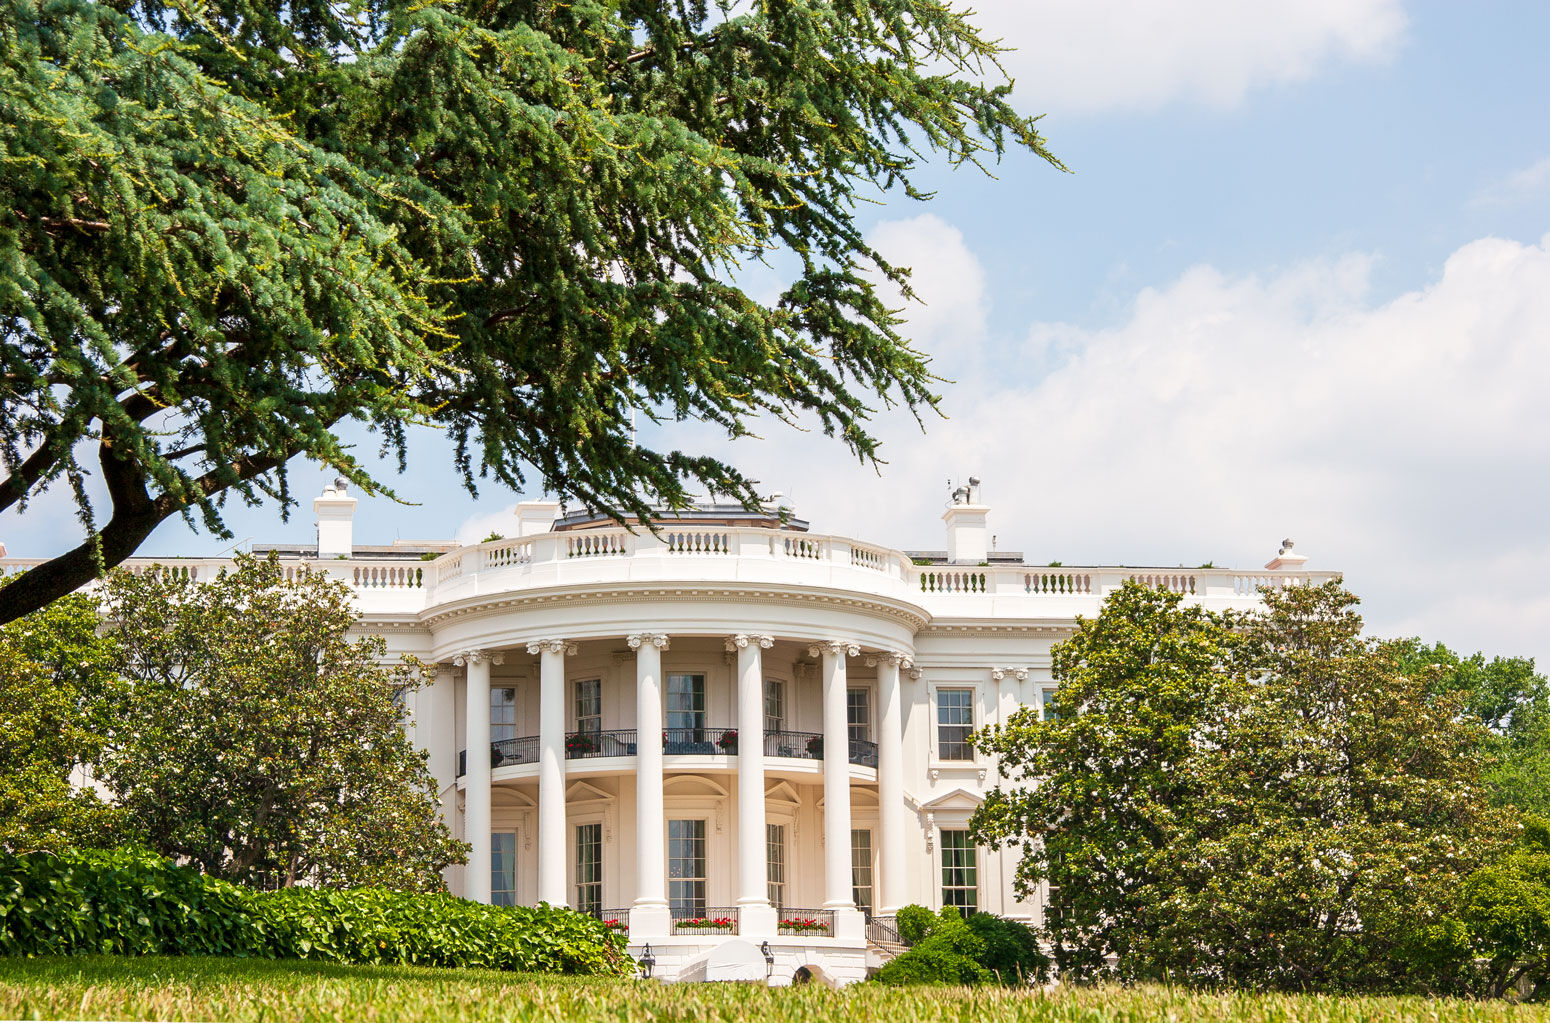 White House from front Lawn